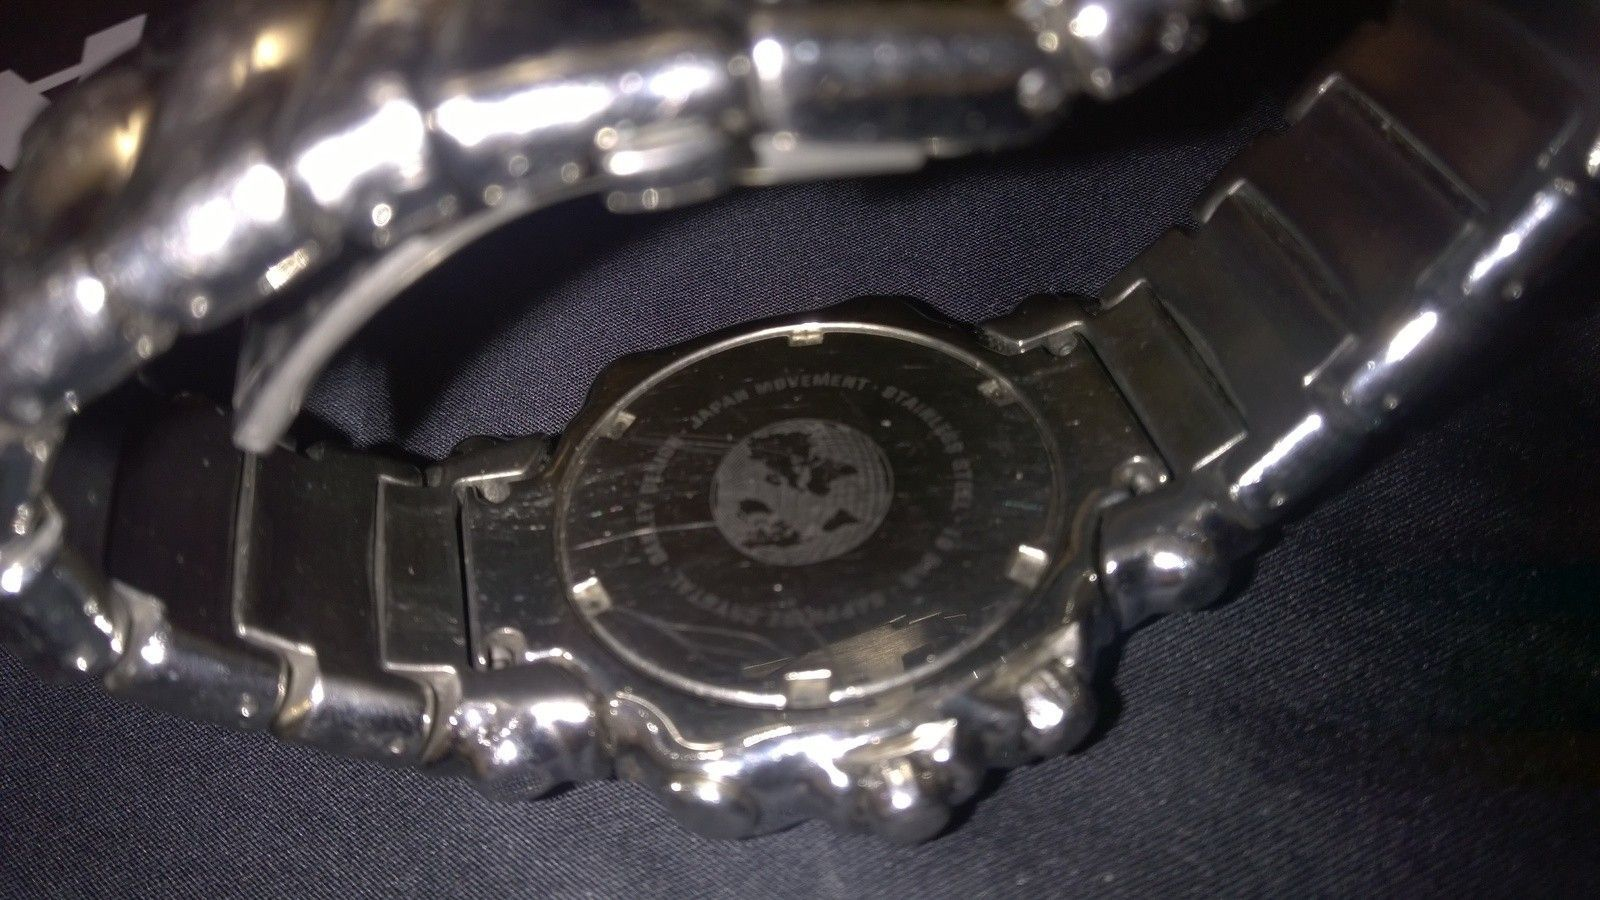 HQ Bunker $235 / Polished GMT Watch $230 / Dog Tag Bottle Openers $60 - WP_20150211_22_54_10_Pro.jpg